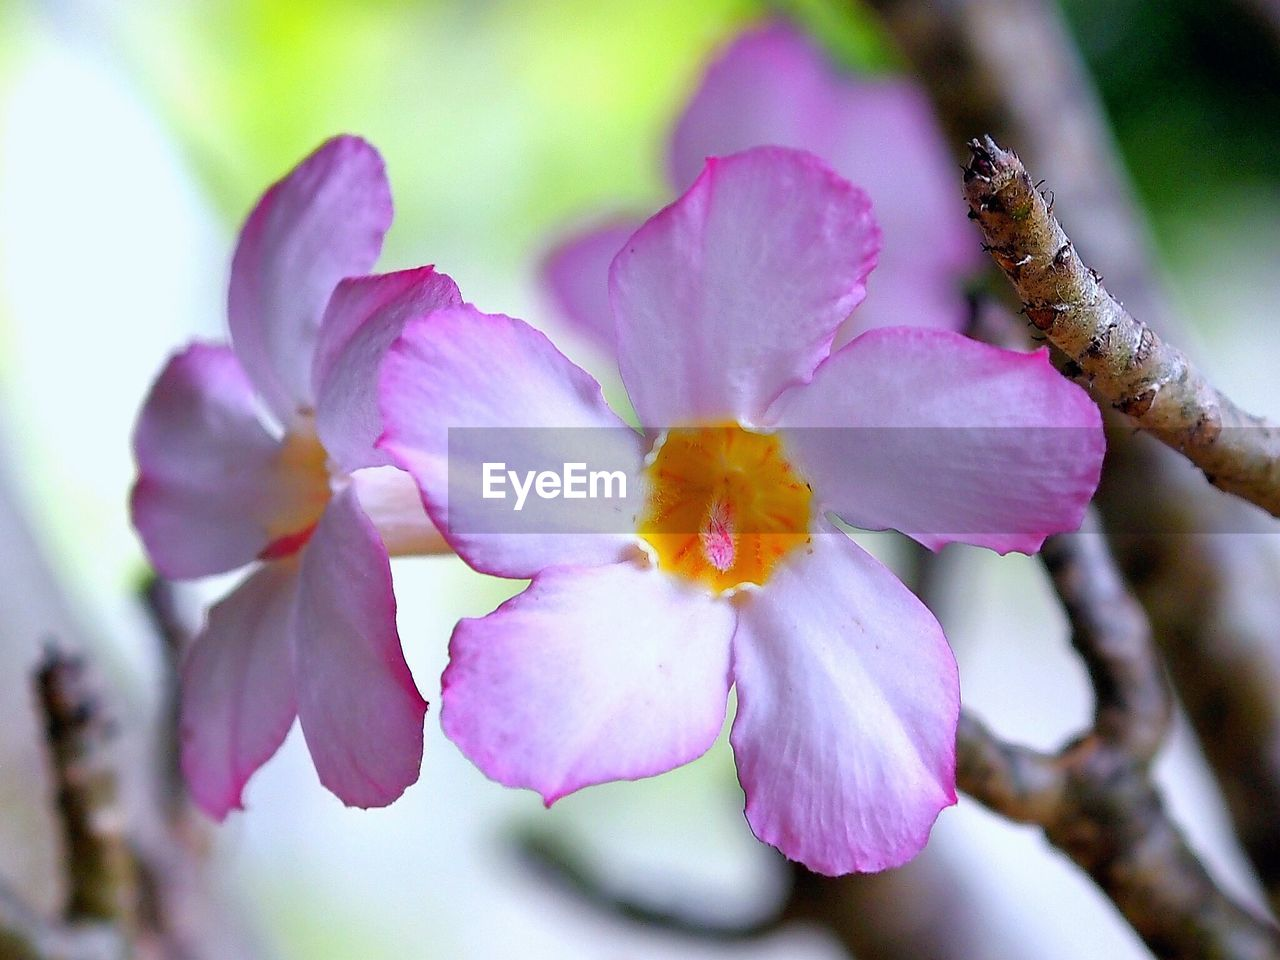 flower, fragility, beauty in nature, nature, petal, growth, blossom, freshness, flower head, botany, close-up, springtime, selective focus, day, branch, no people, stamen, plant, outdoors, tree